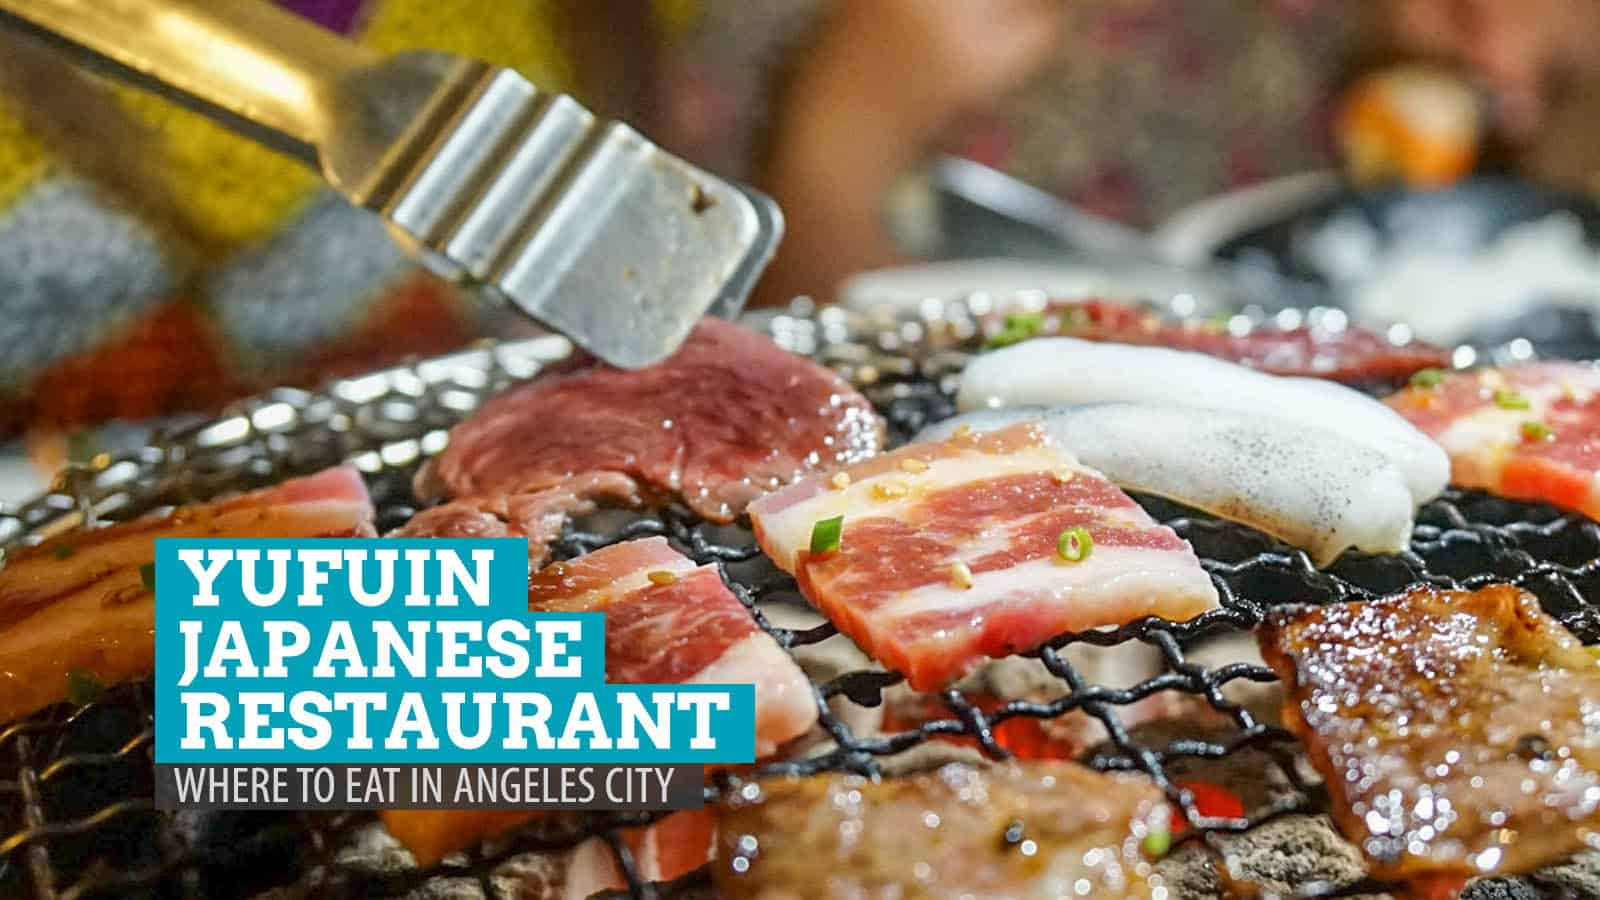 Yufuin Japanese Restaurant: Where to Eat in Angeles City, Pampanga